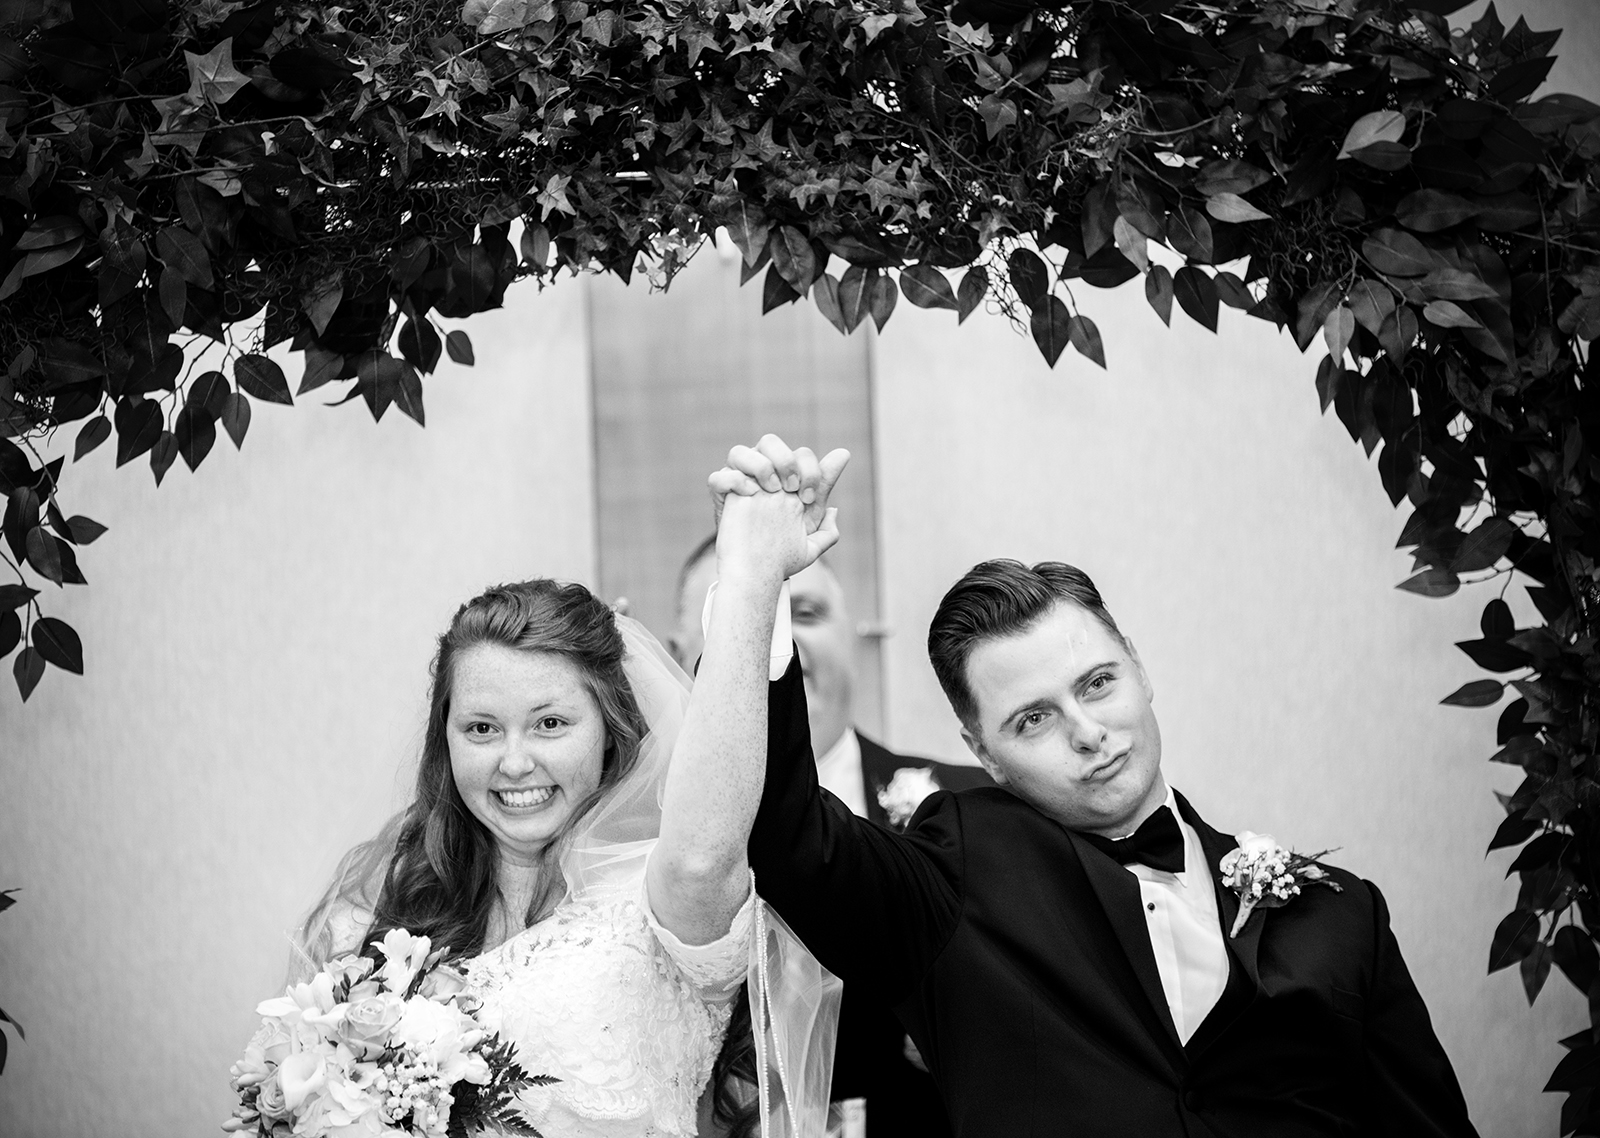 An elated bride and groom at a wedding at the downtown Marriott in Raleigh, NC